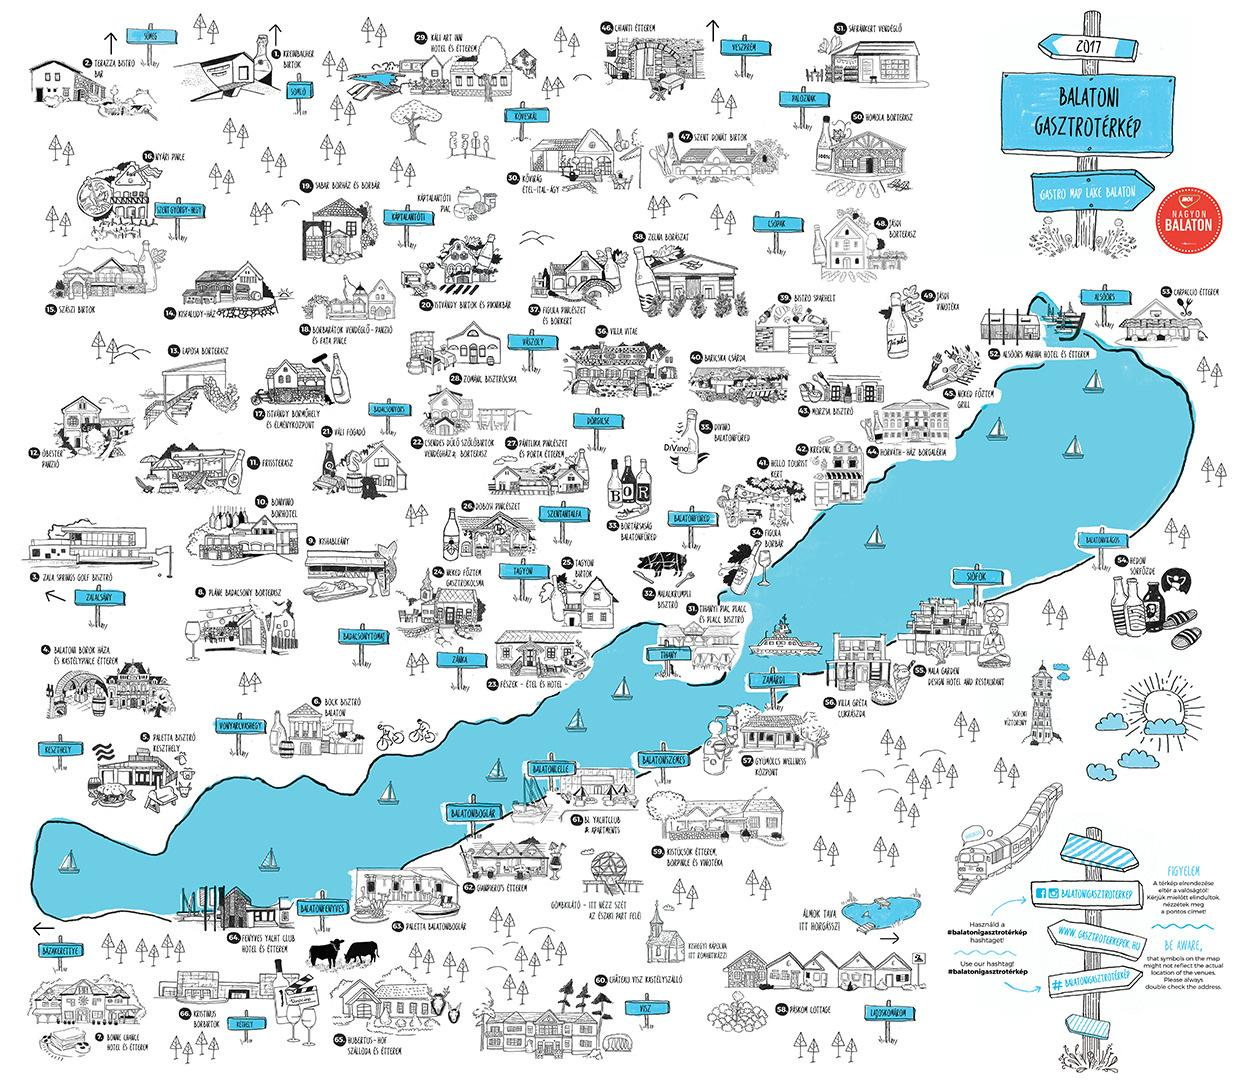 Balaton Gastro Map - Everything You Need To Know About The Lake